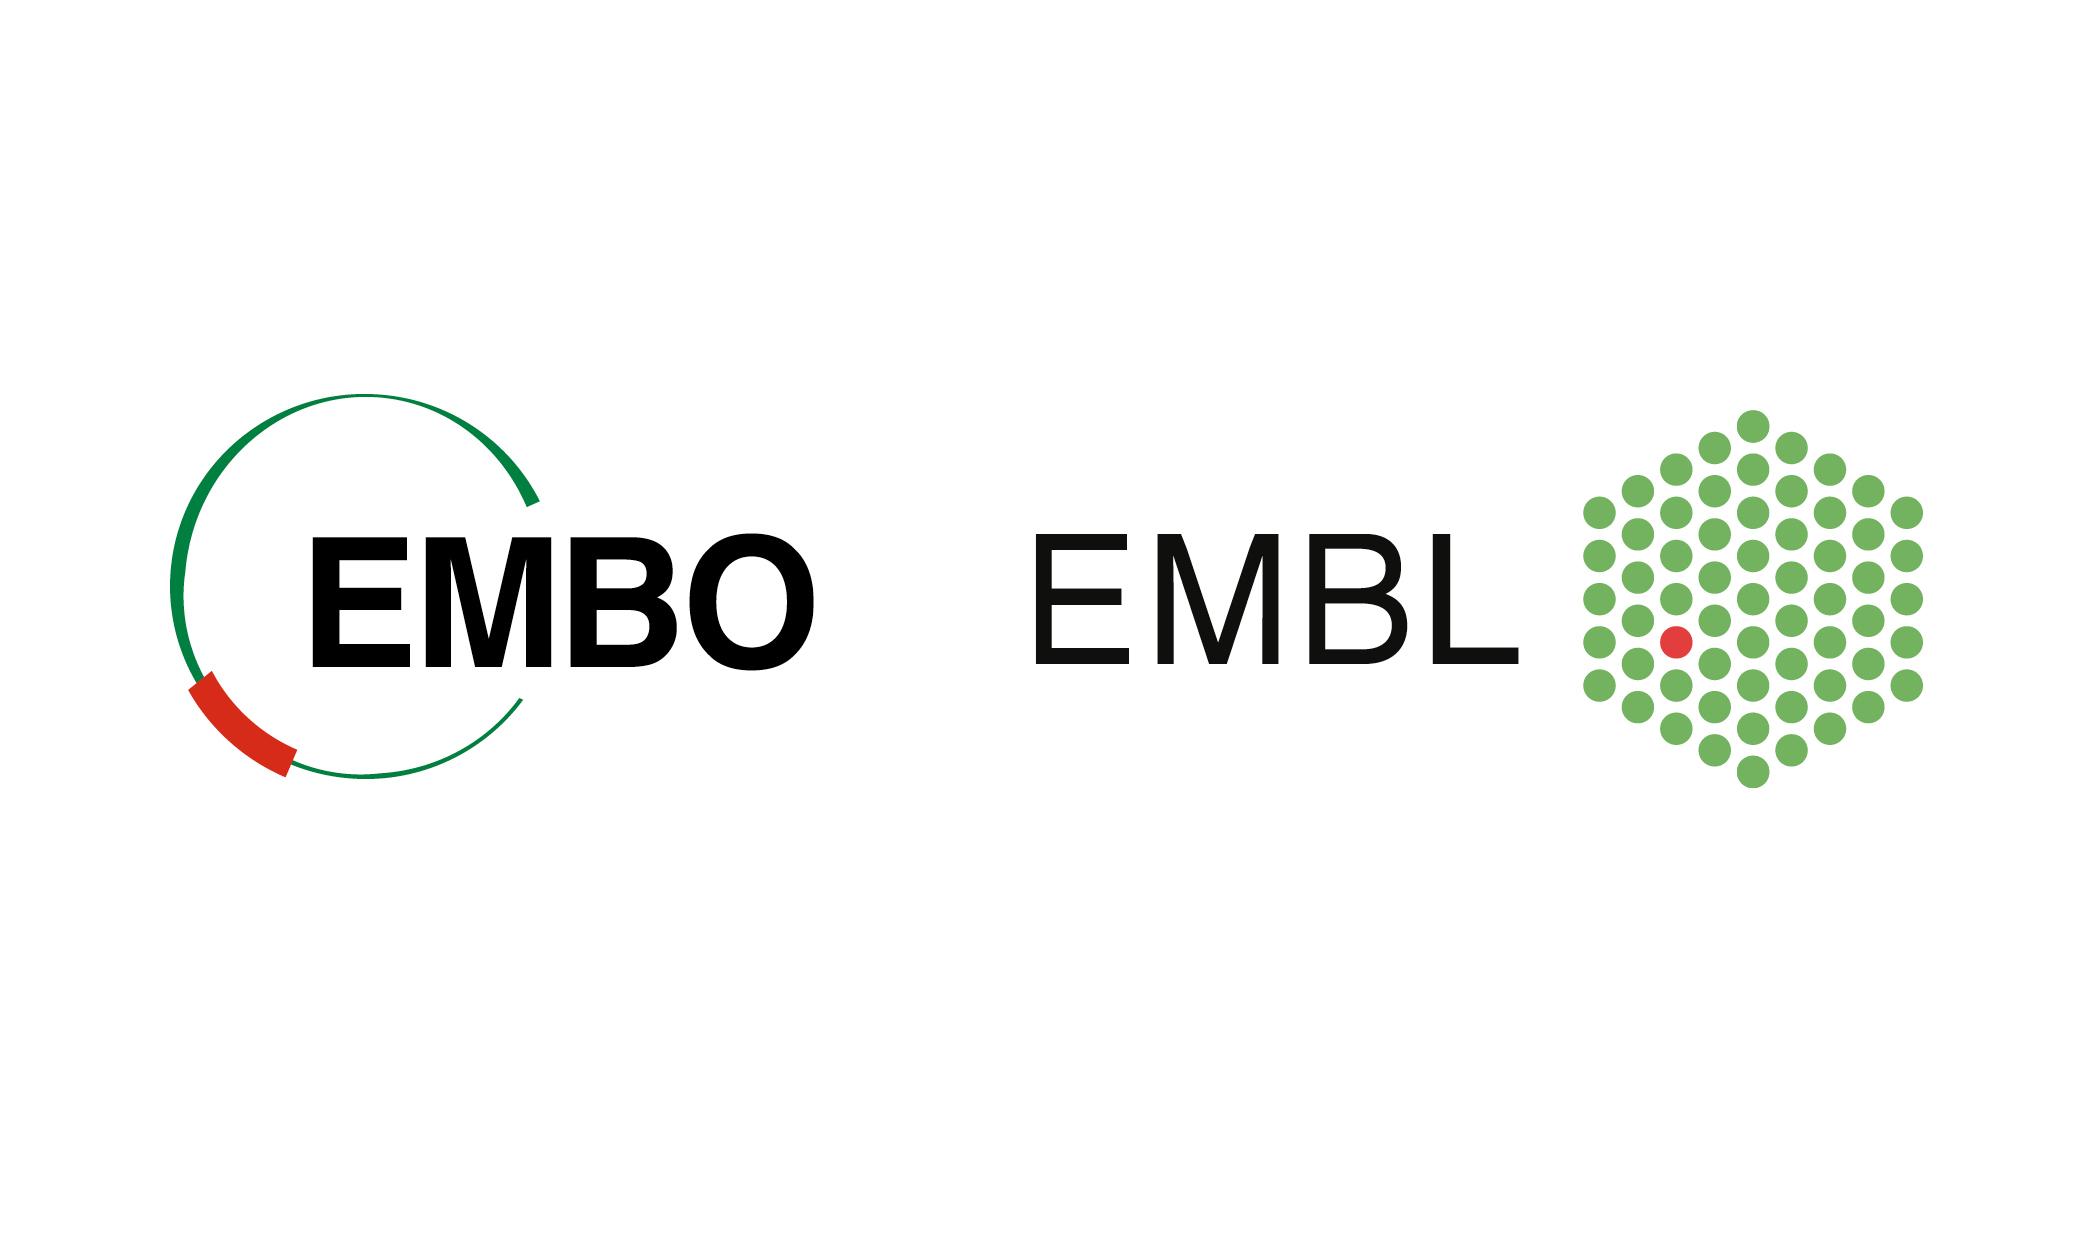 EMBO and EMBL logos.